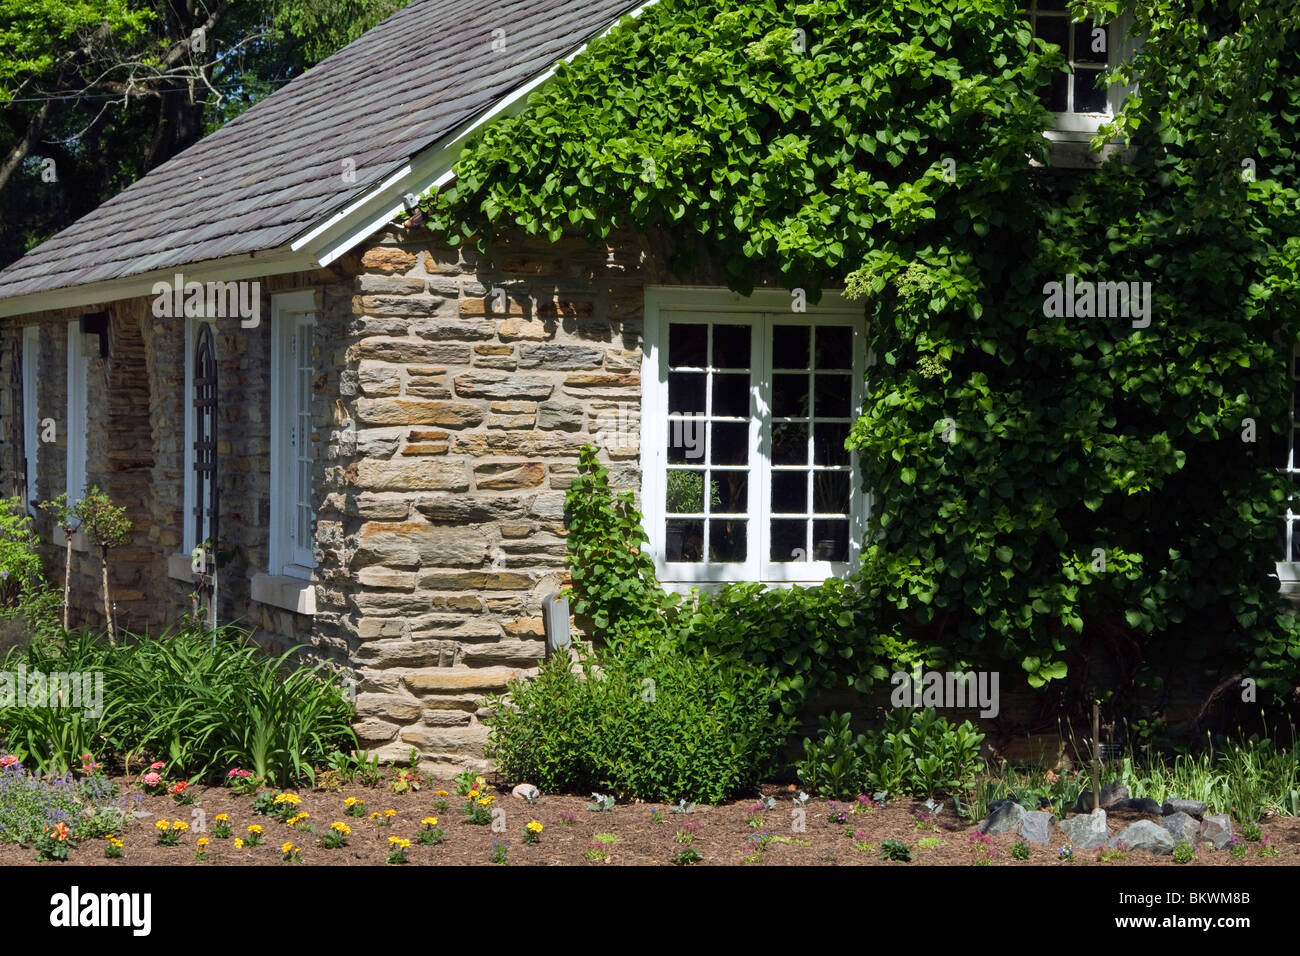 The gable end of a country cottage with ceder shakes stone chimney and ivy. Shot in early spring a green fir overhangs. - Stock Image